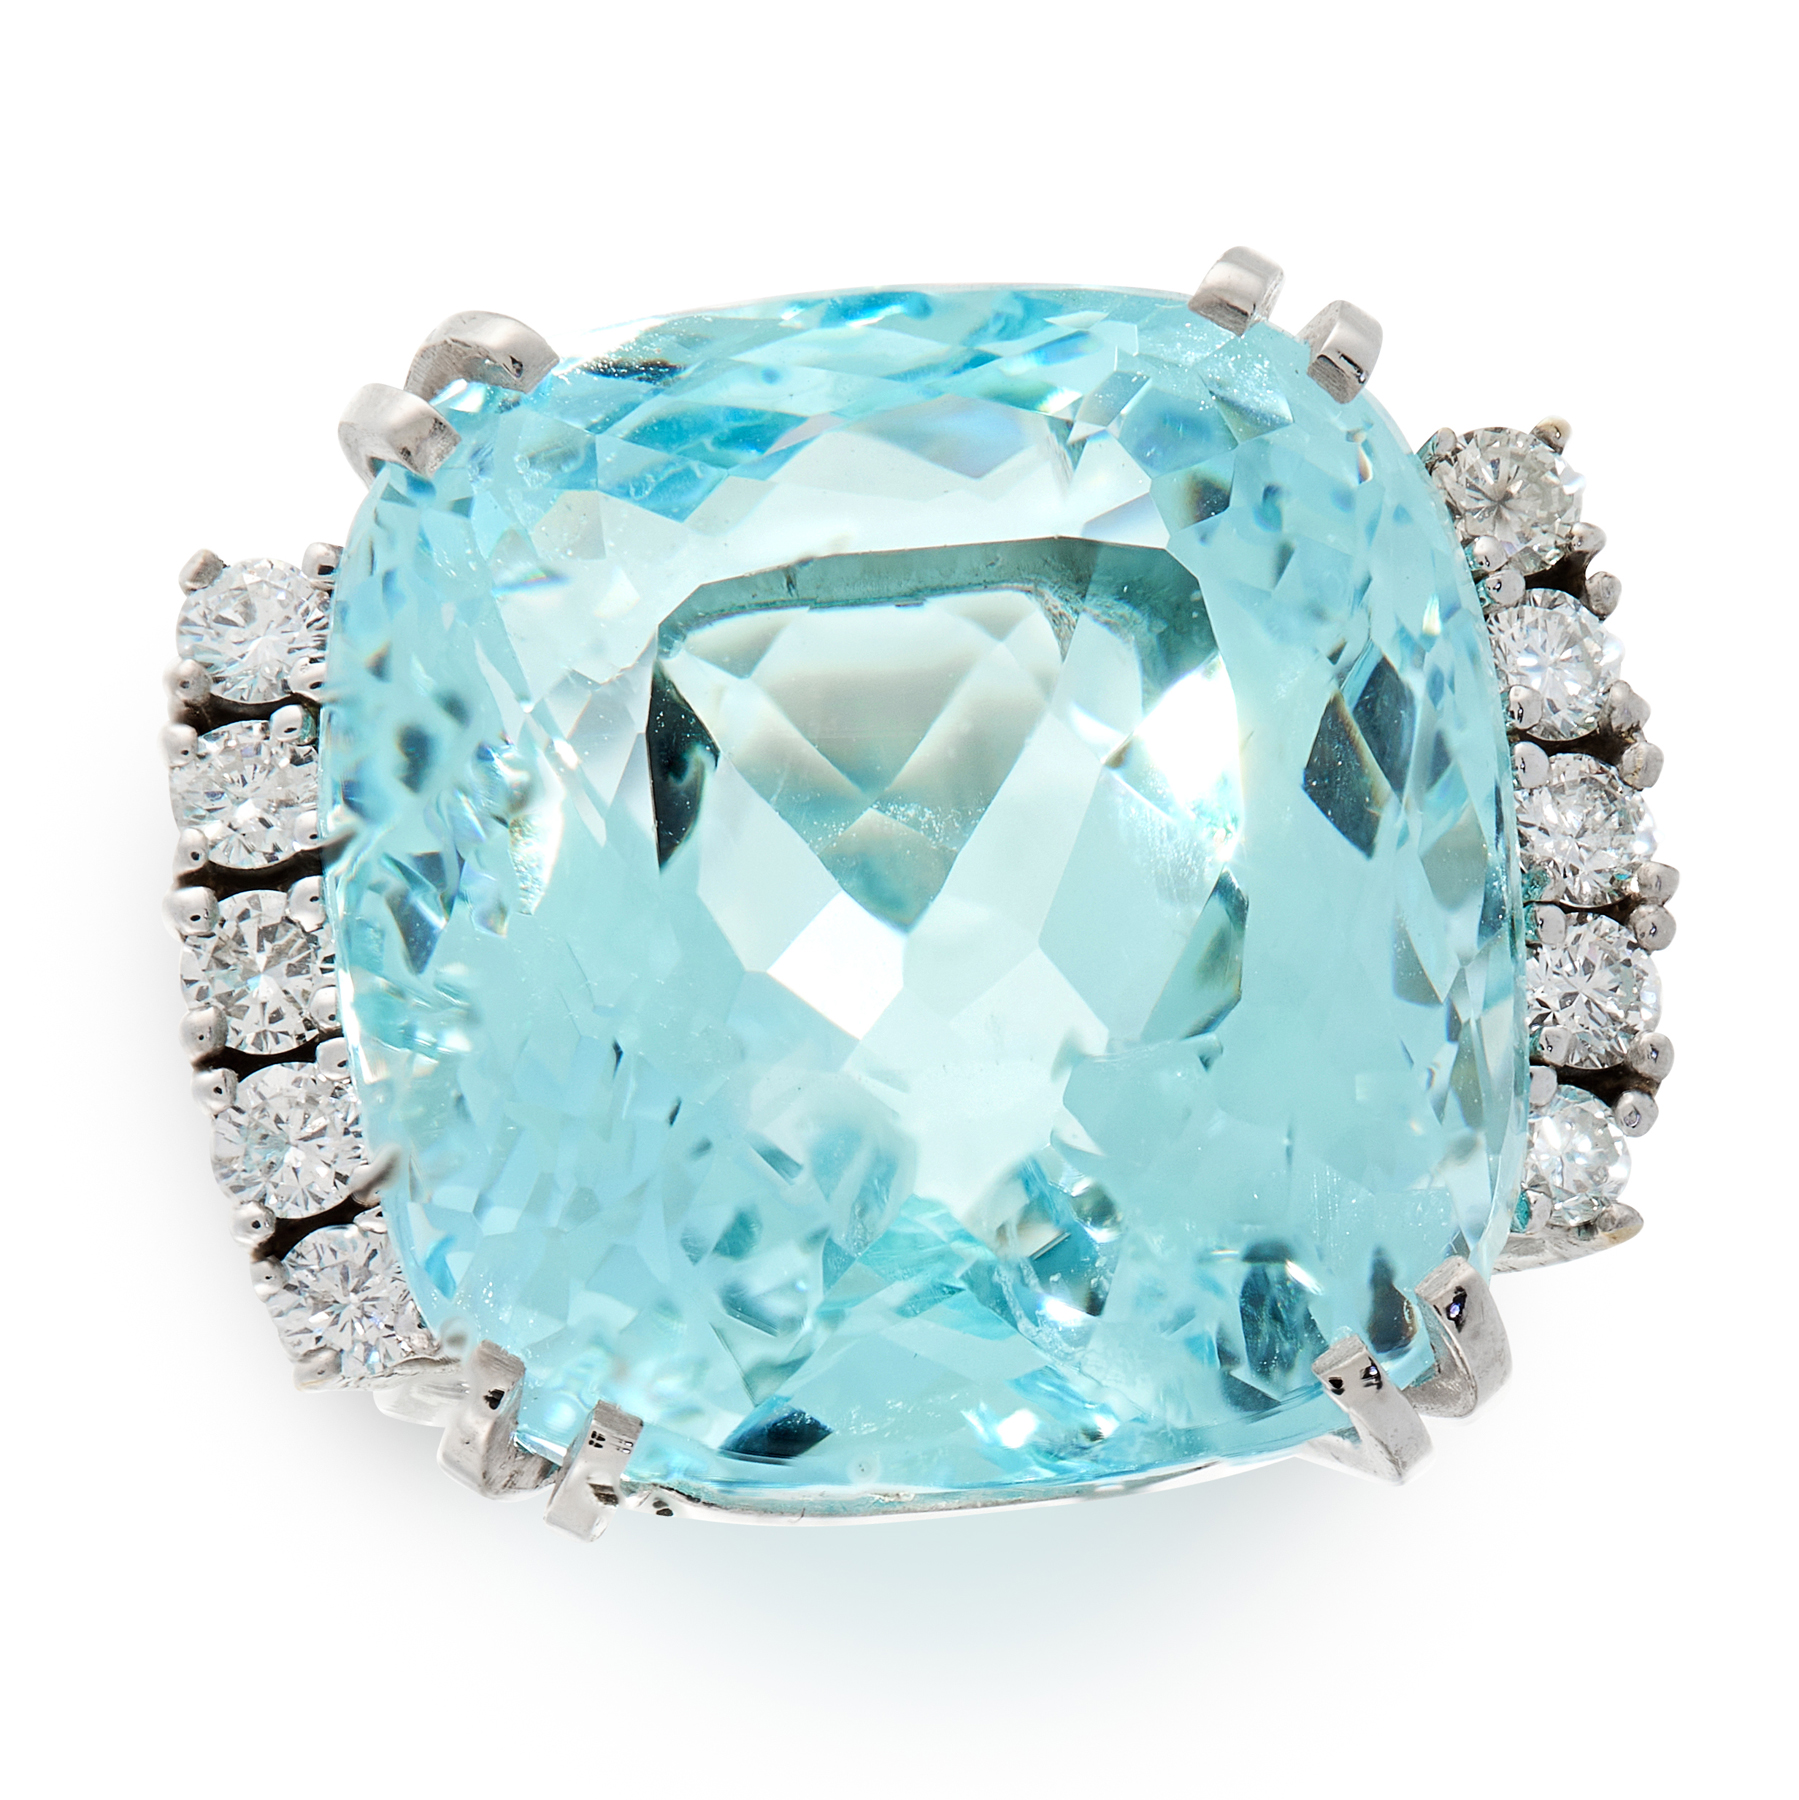 AN AQUAMARINE AND DIAMOND DRESS RING set with a cushion cut aquamarine of 27.76 carats, between rows - Image 2 of 2